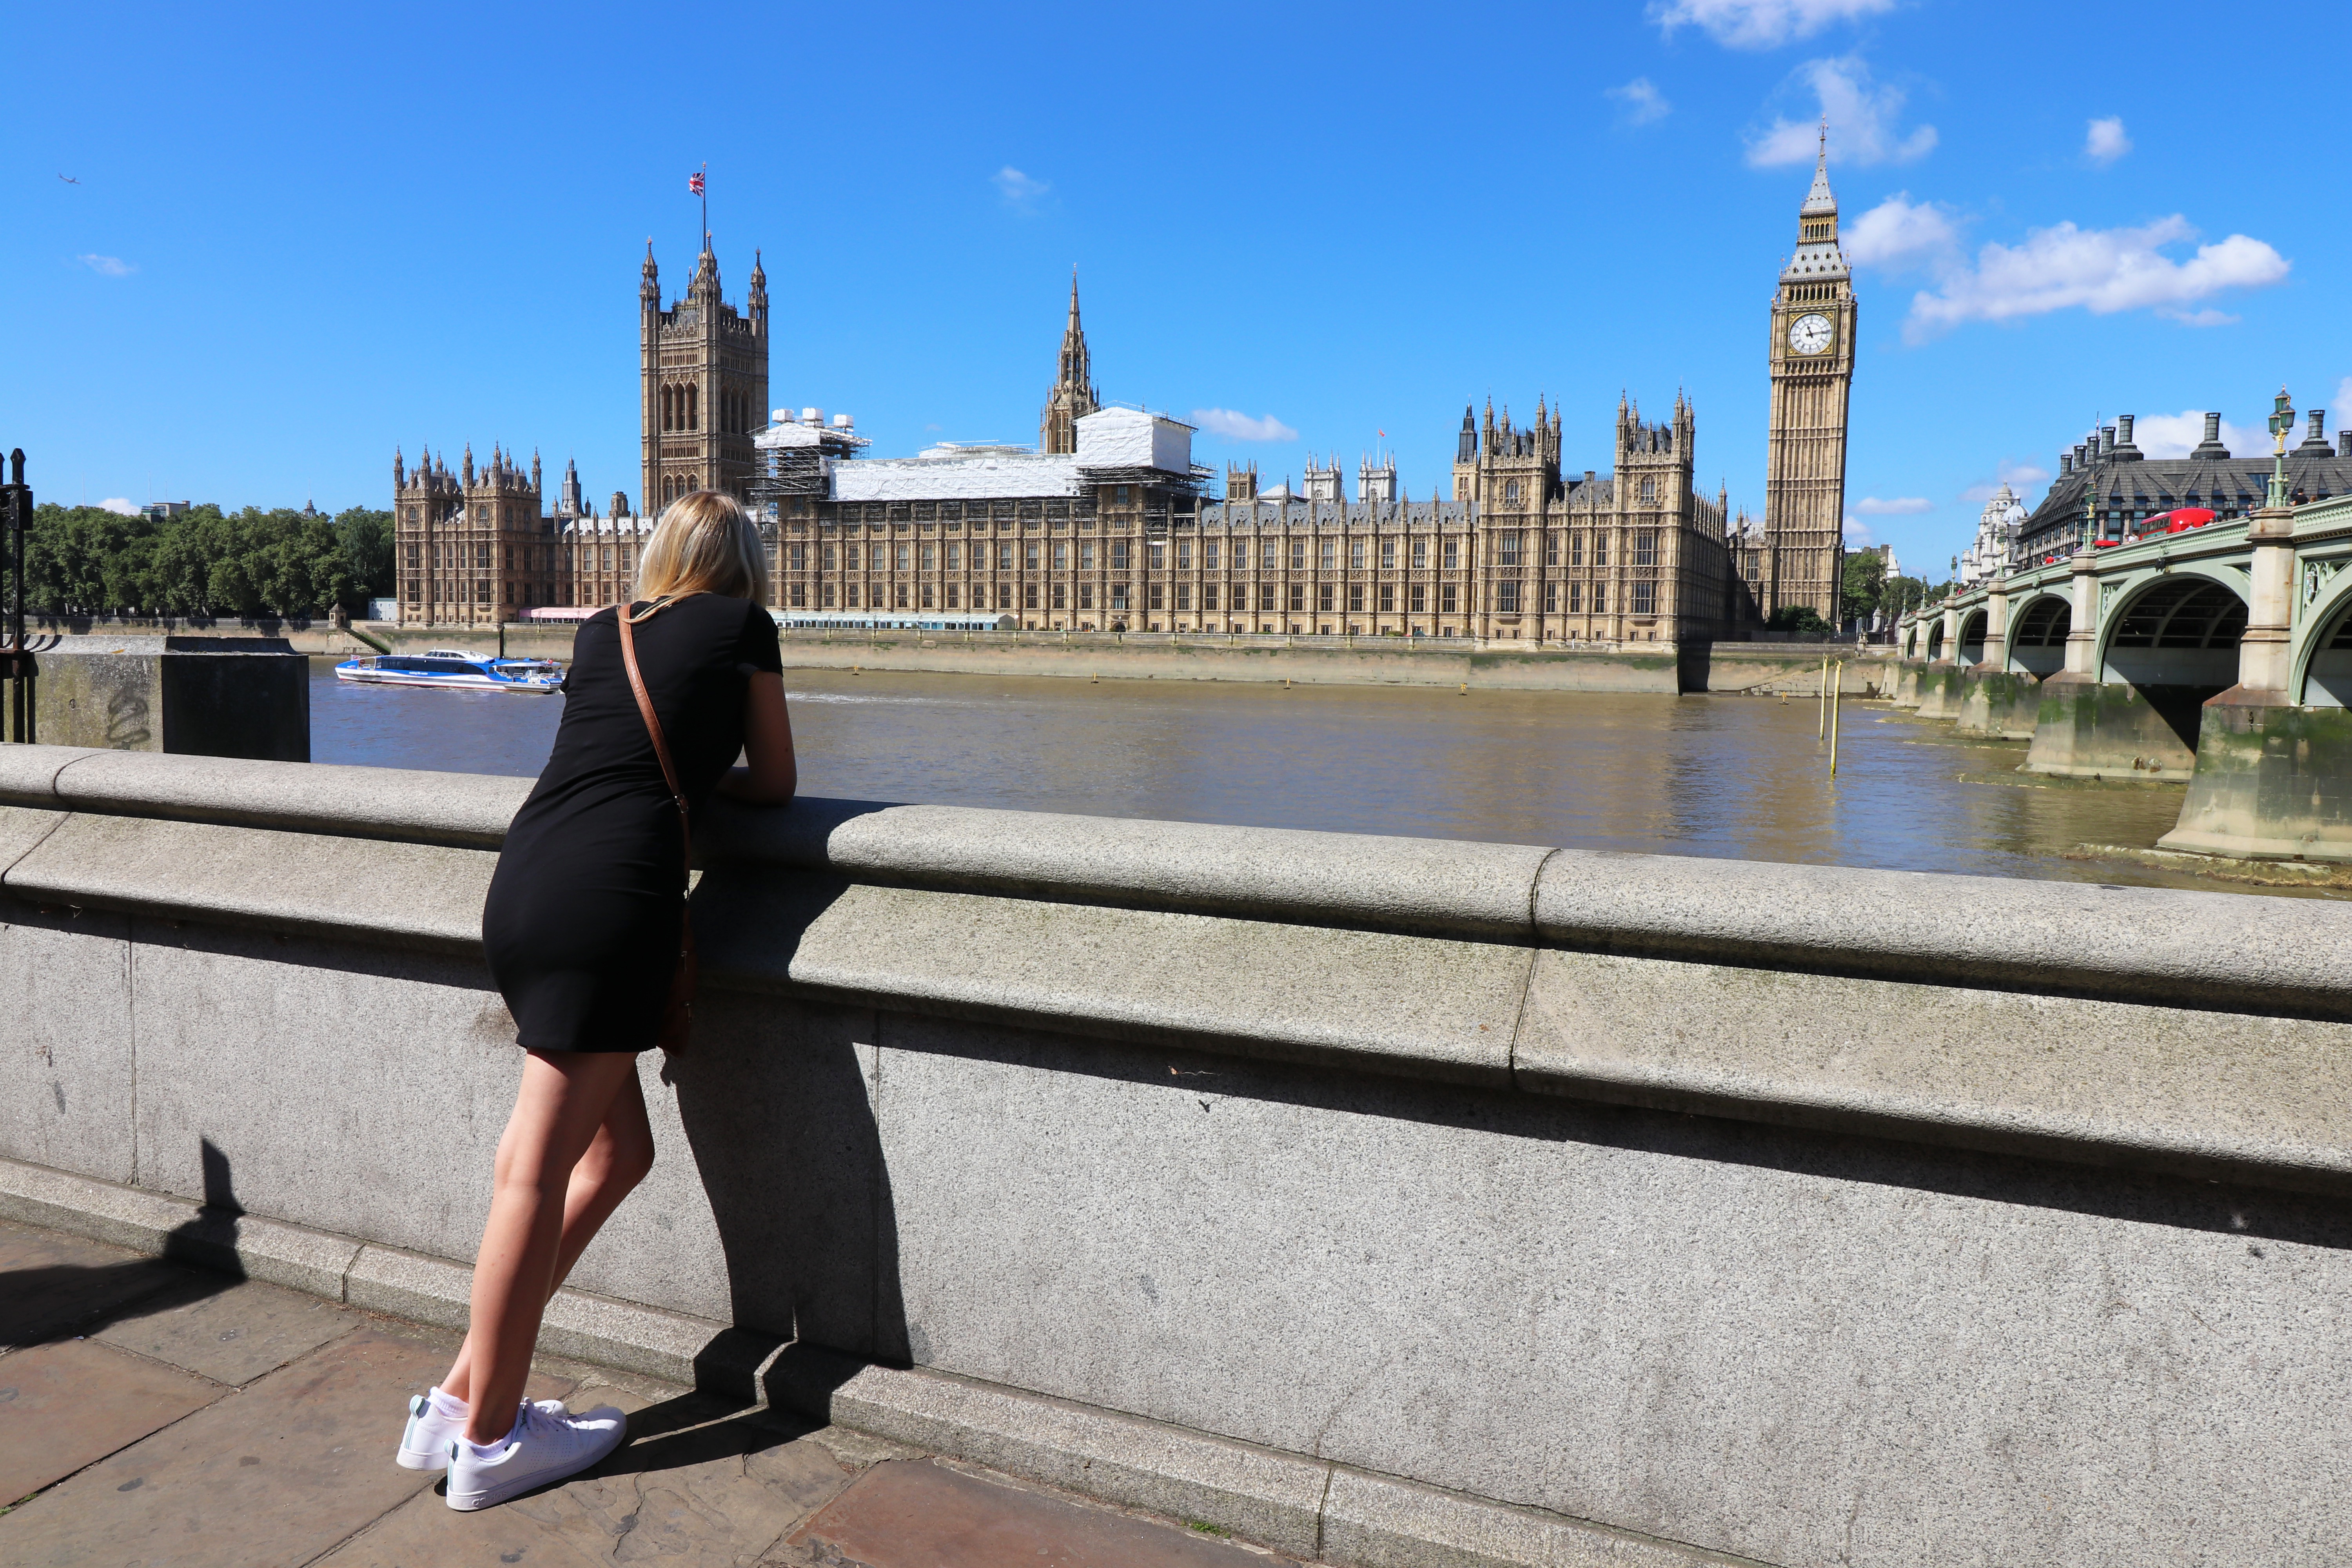 Tandi overlooking Palace of Westminster and Big Ben copy.jpg